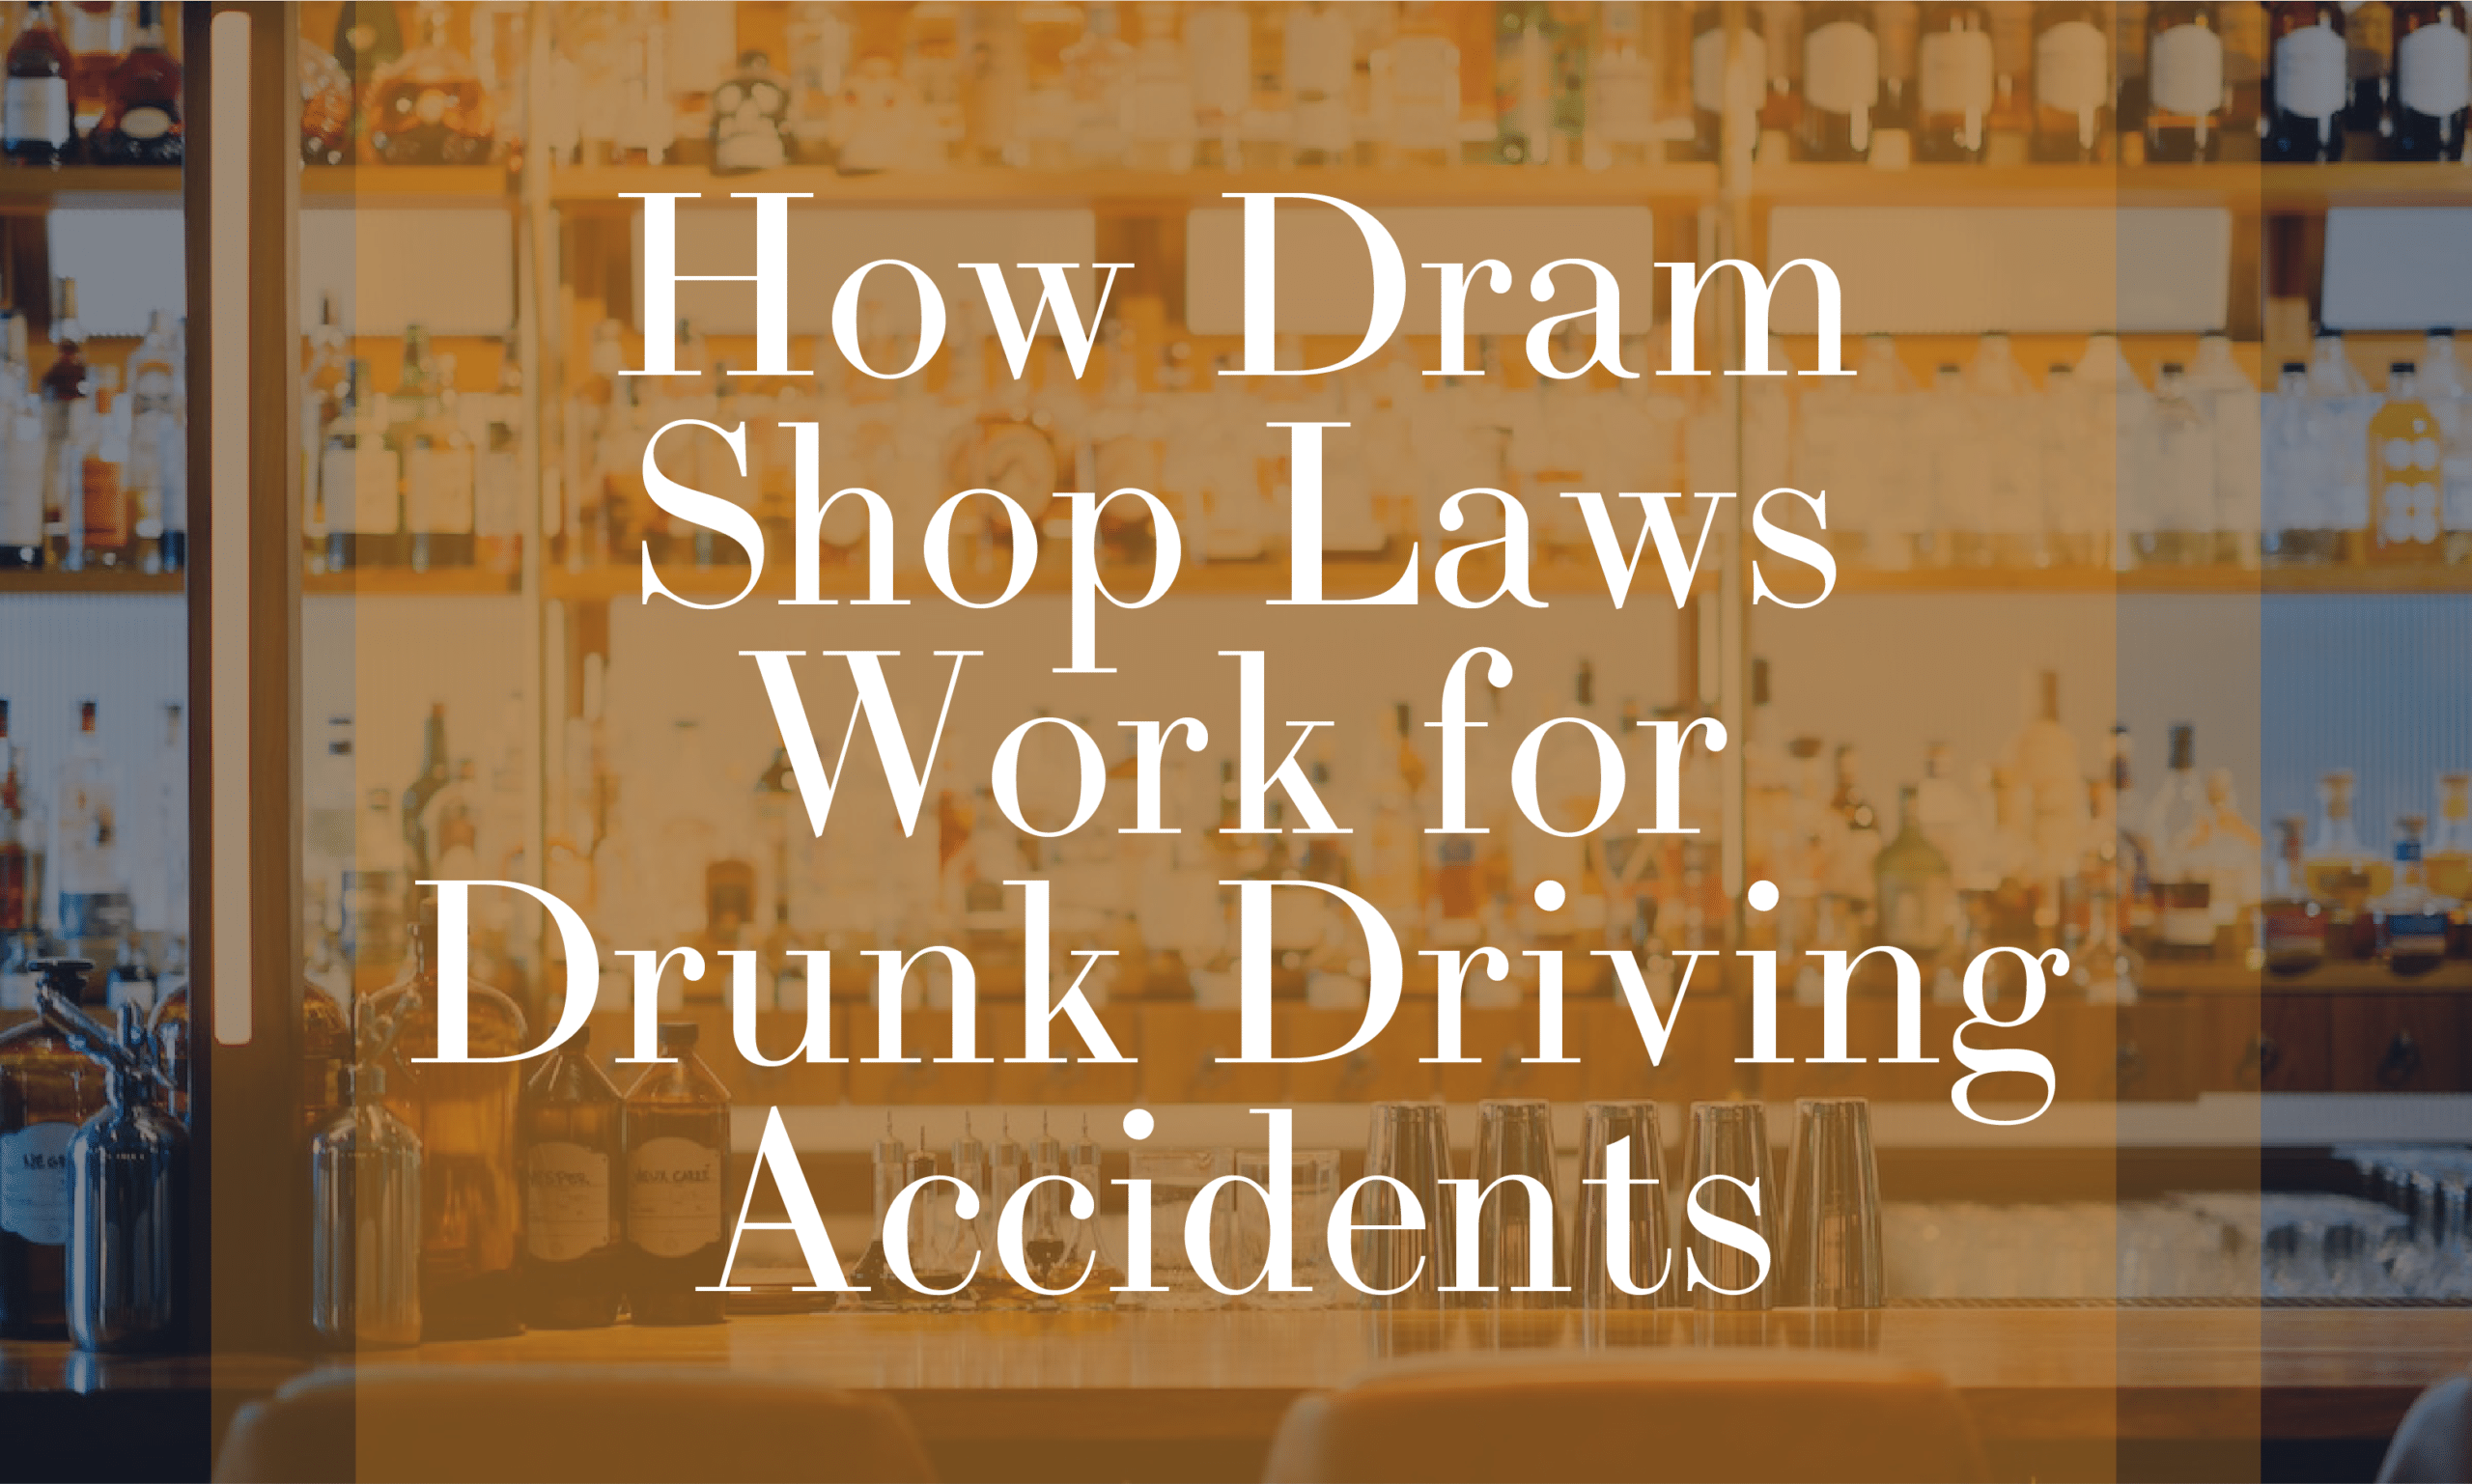 How Dram Shop Laws Work for Drunk Driving Accidents